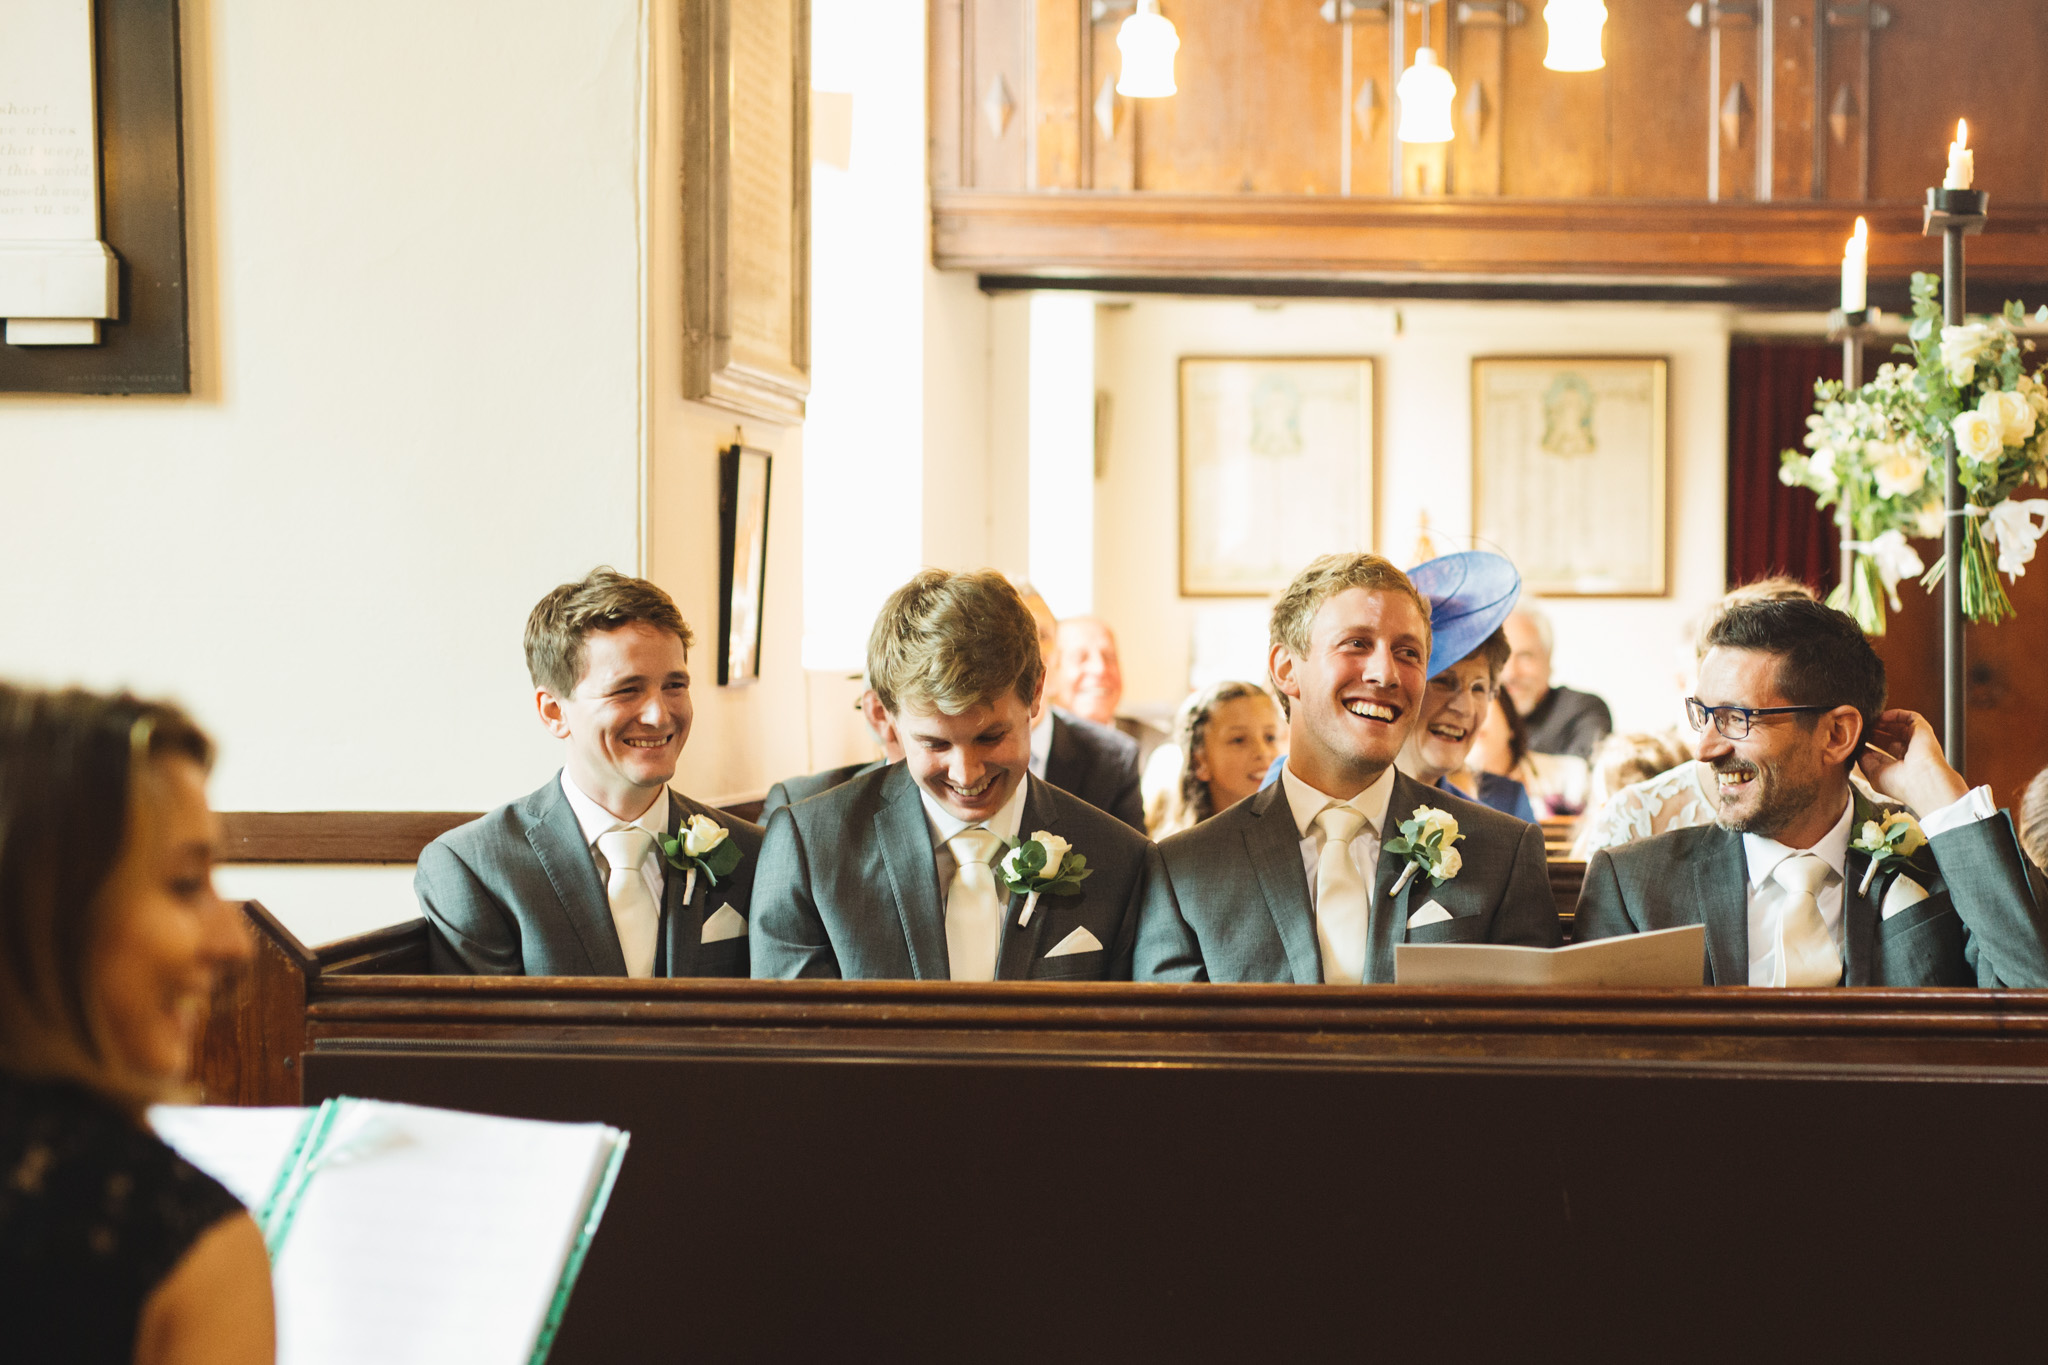 cat-lane-weddings__combermere-abbey-wedding-photography__clw__1318__C5A0523.jpg